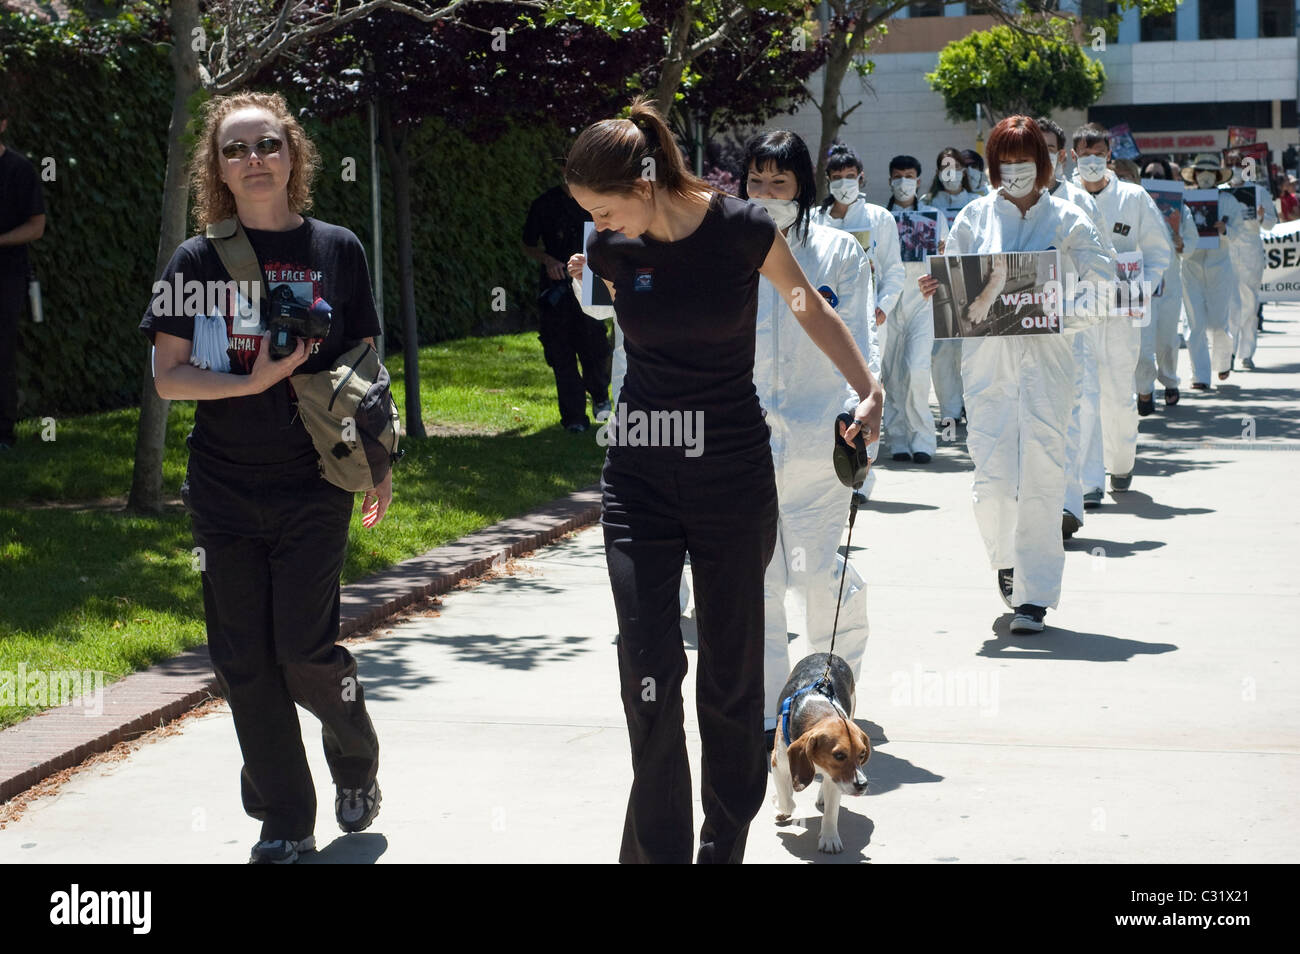 A rescued laboratory Beagle dog dubbed Freedom leads an anti-vivisection protest at UCLA campus in Los Angeles, - Stock Image